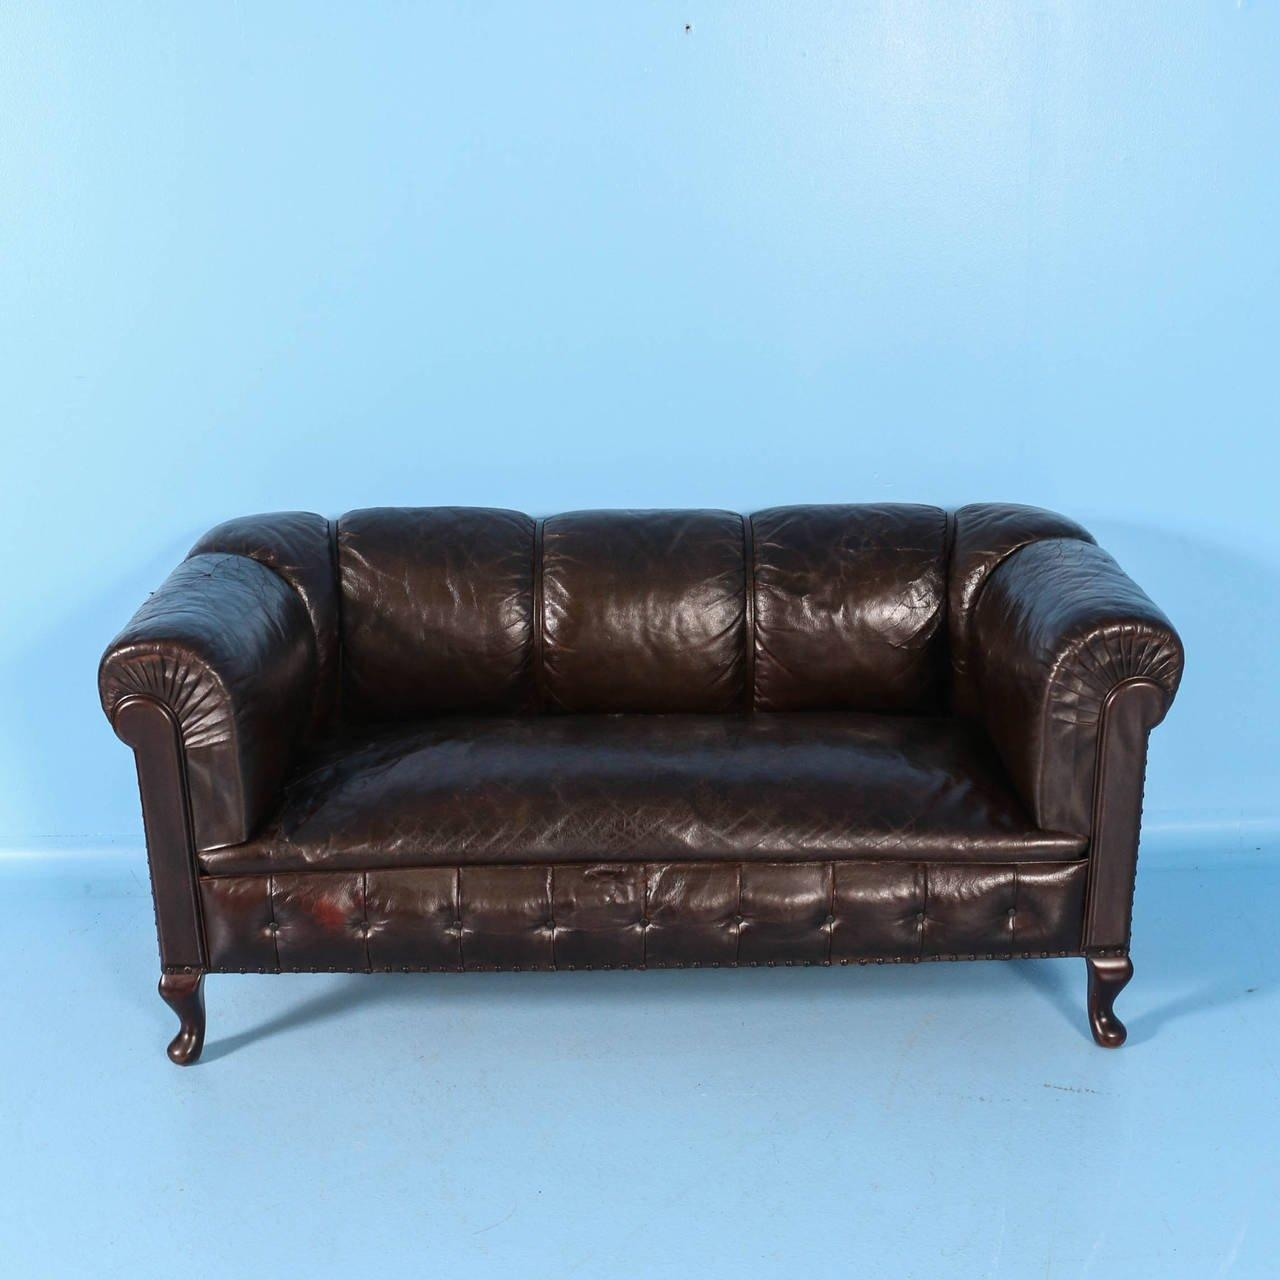 Small Vintage Chesterfield Sofa, England, Circa 1920 – 1940 At 1Stdibs Intended For Vintage Chesterfield Sofas (Image 3 of 20)